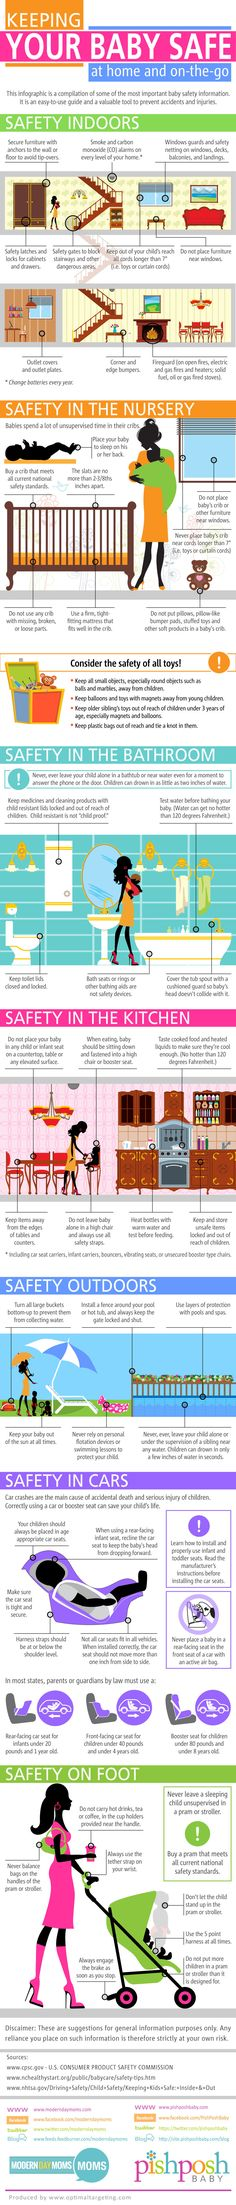 Keeping Baby Safe -Infographic | Pride and Joy Baby Planners